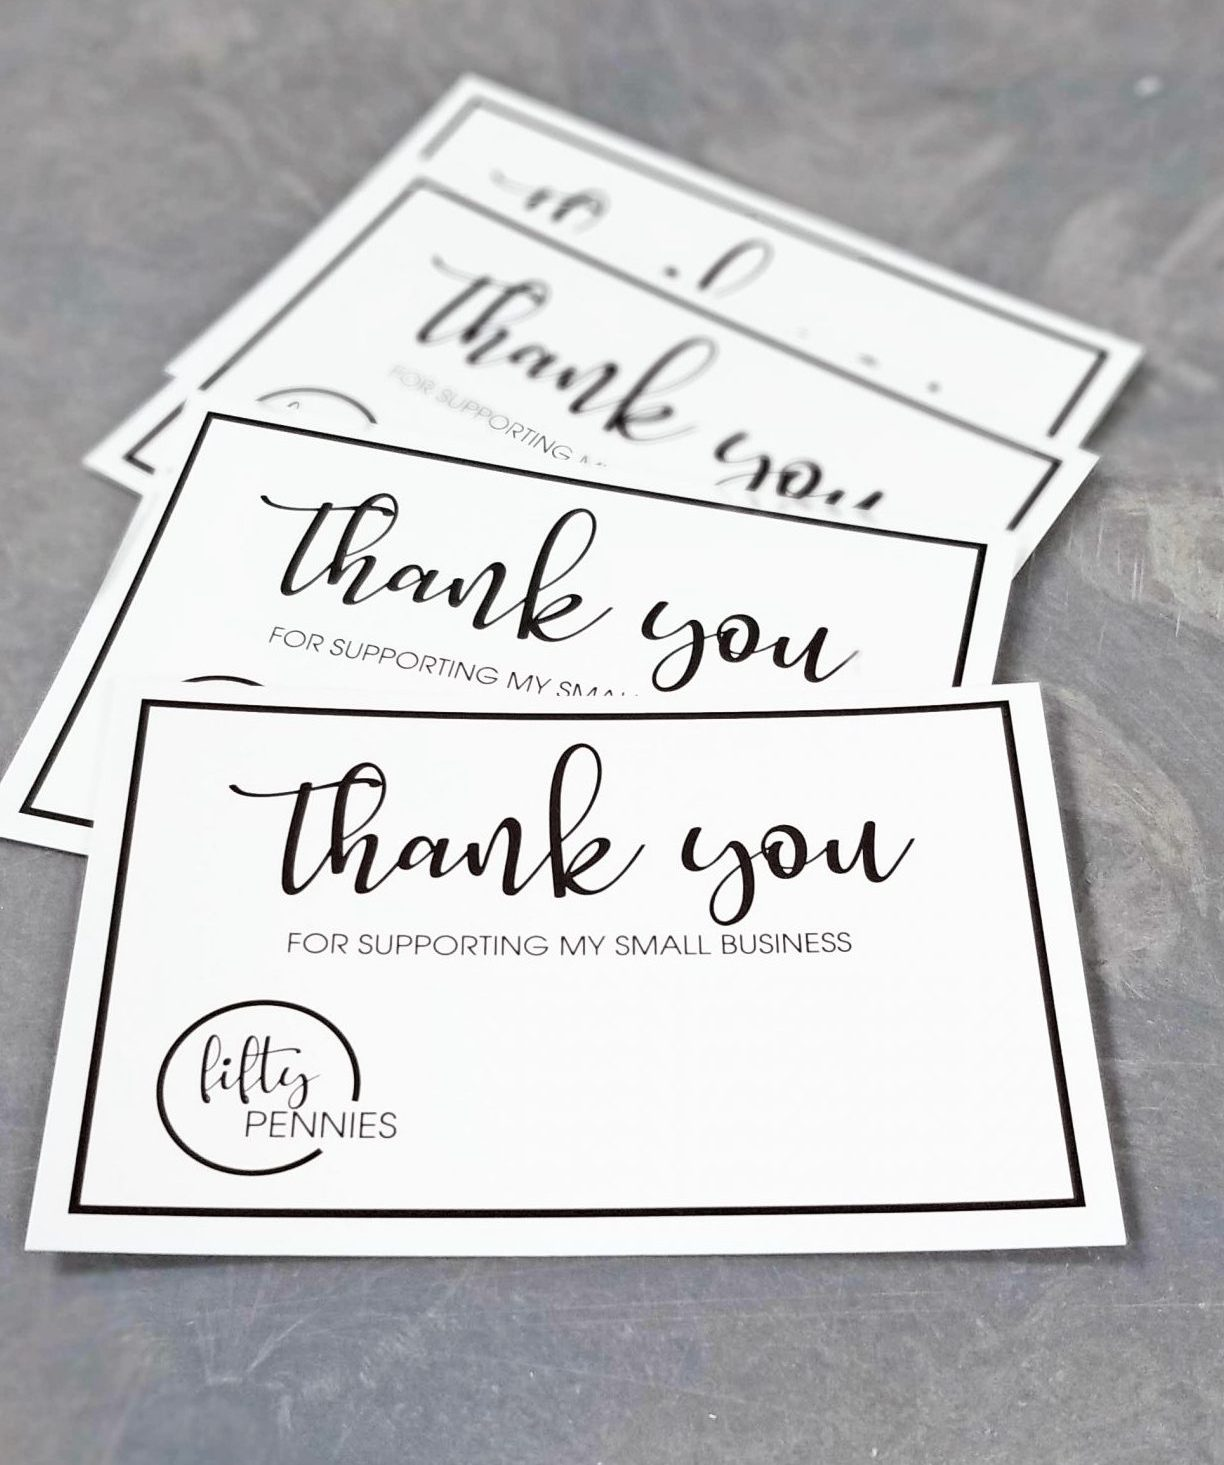 Fifty Pennies Thank You Card